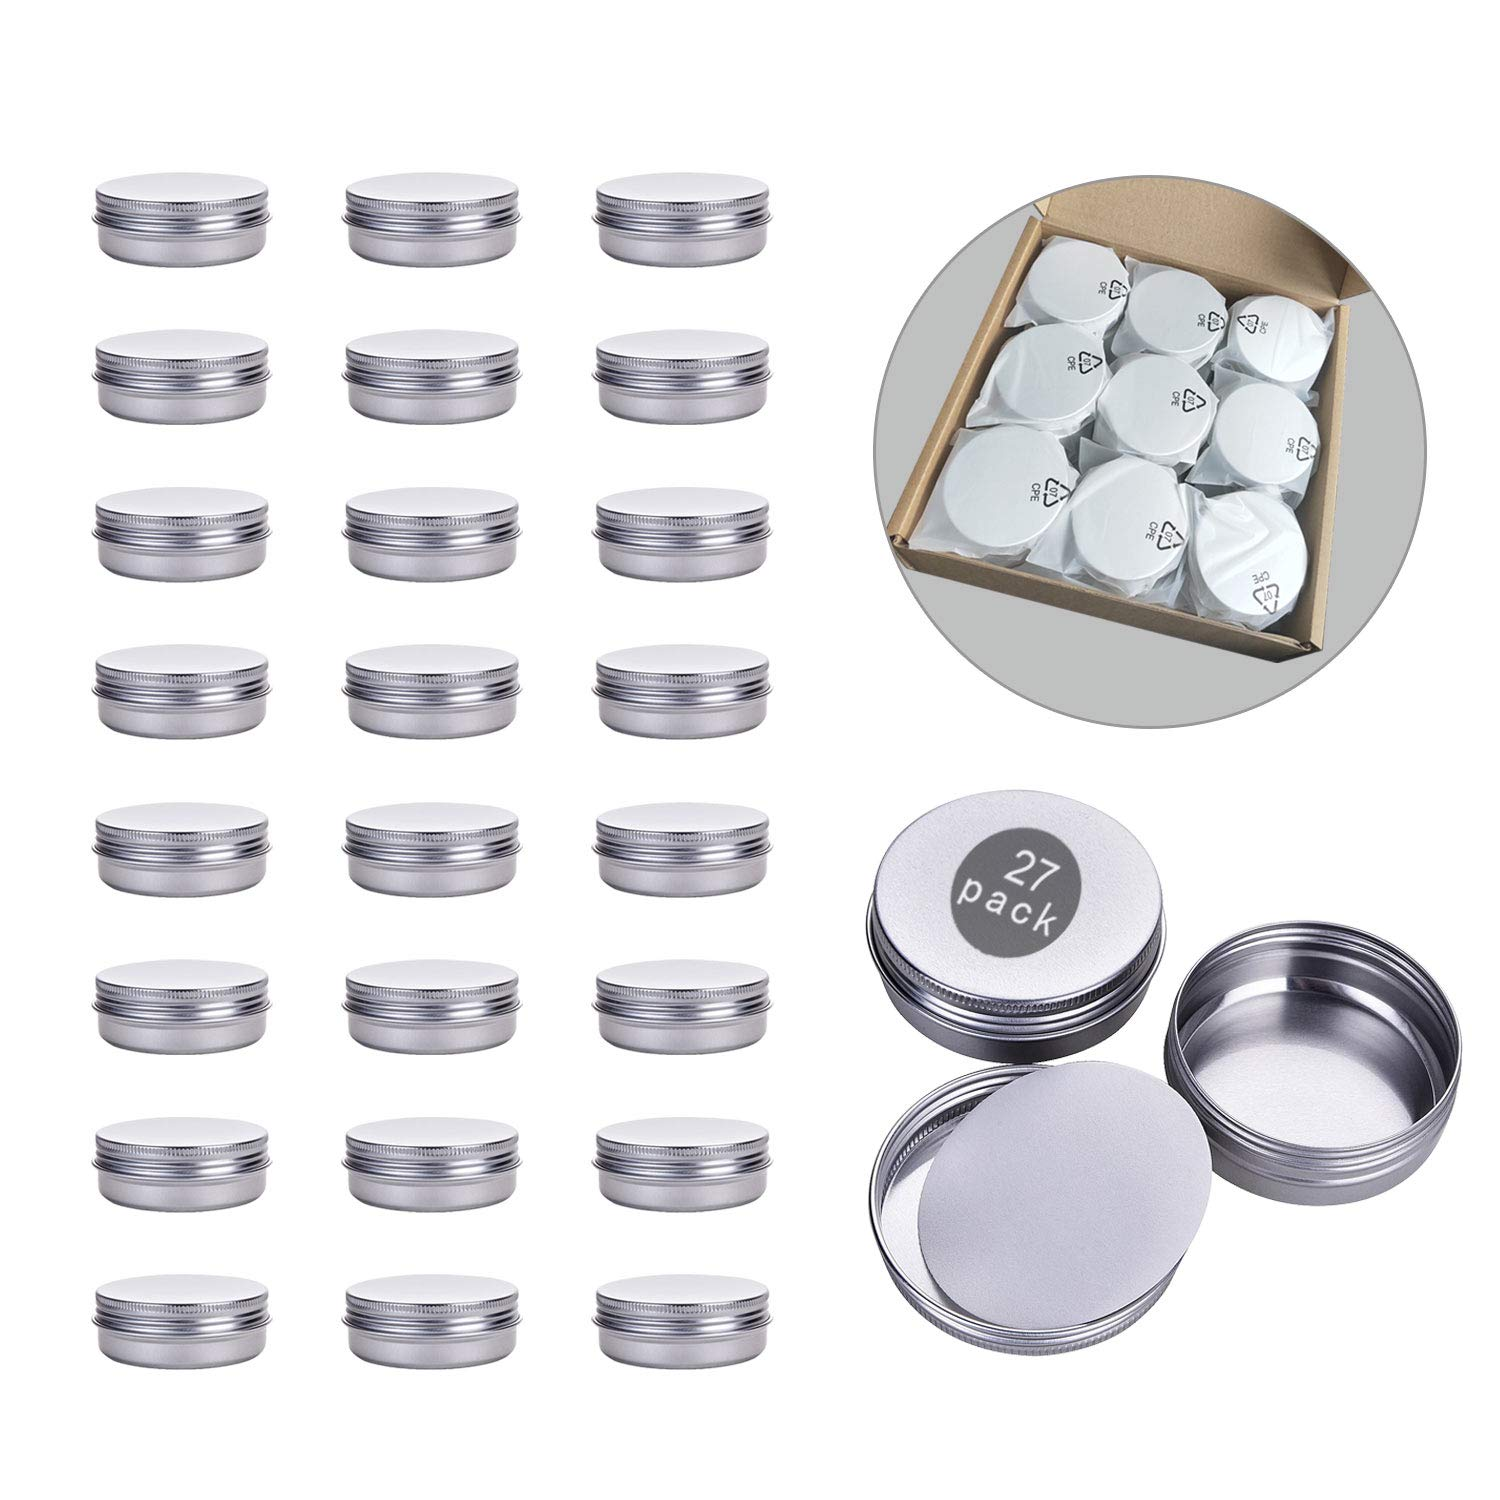 2 oz Tin Containers with Lids,Aluminum Tin for Salve, Round Metal Tin Cans Storage Food Tins with Screw Lids(27 Packs)